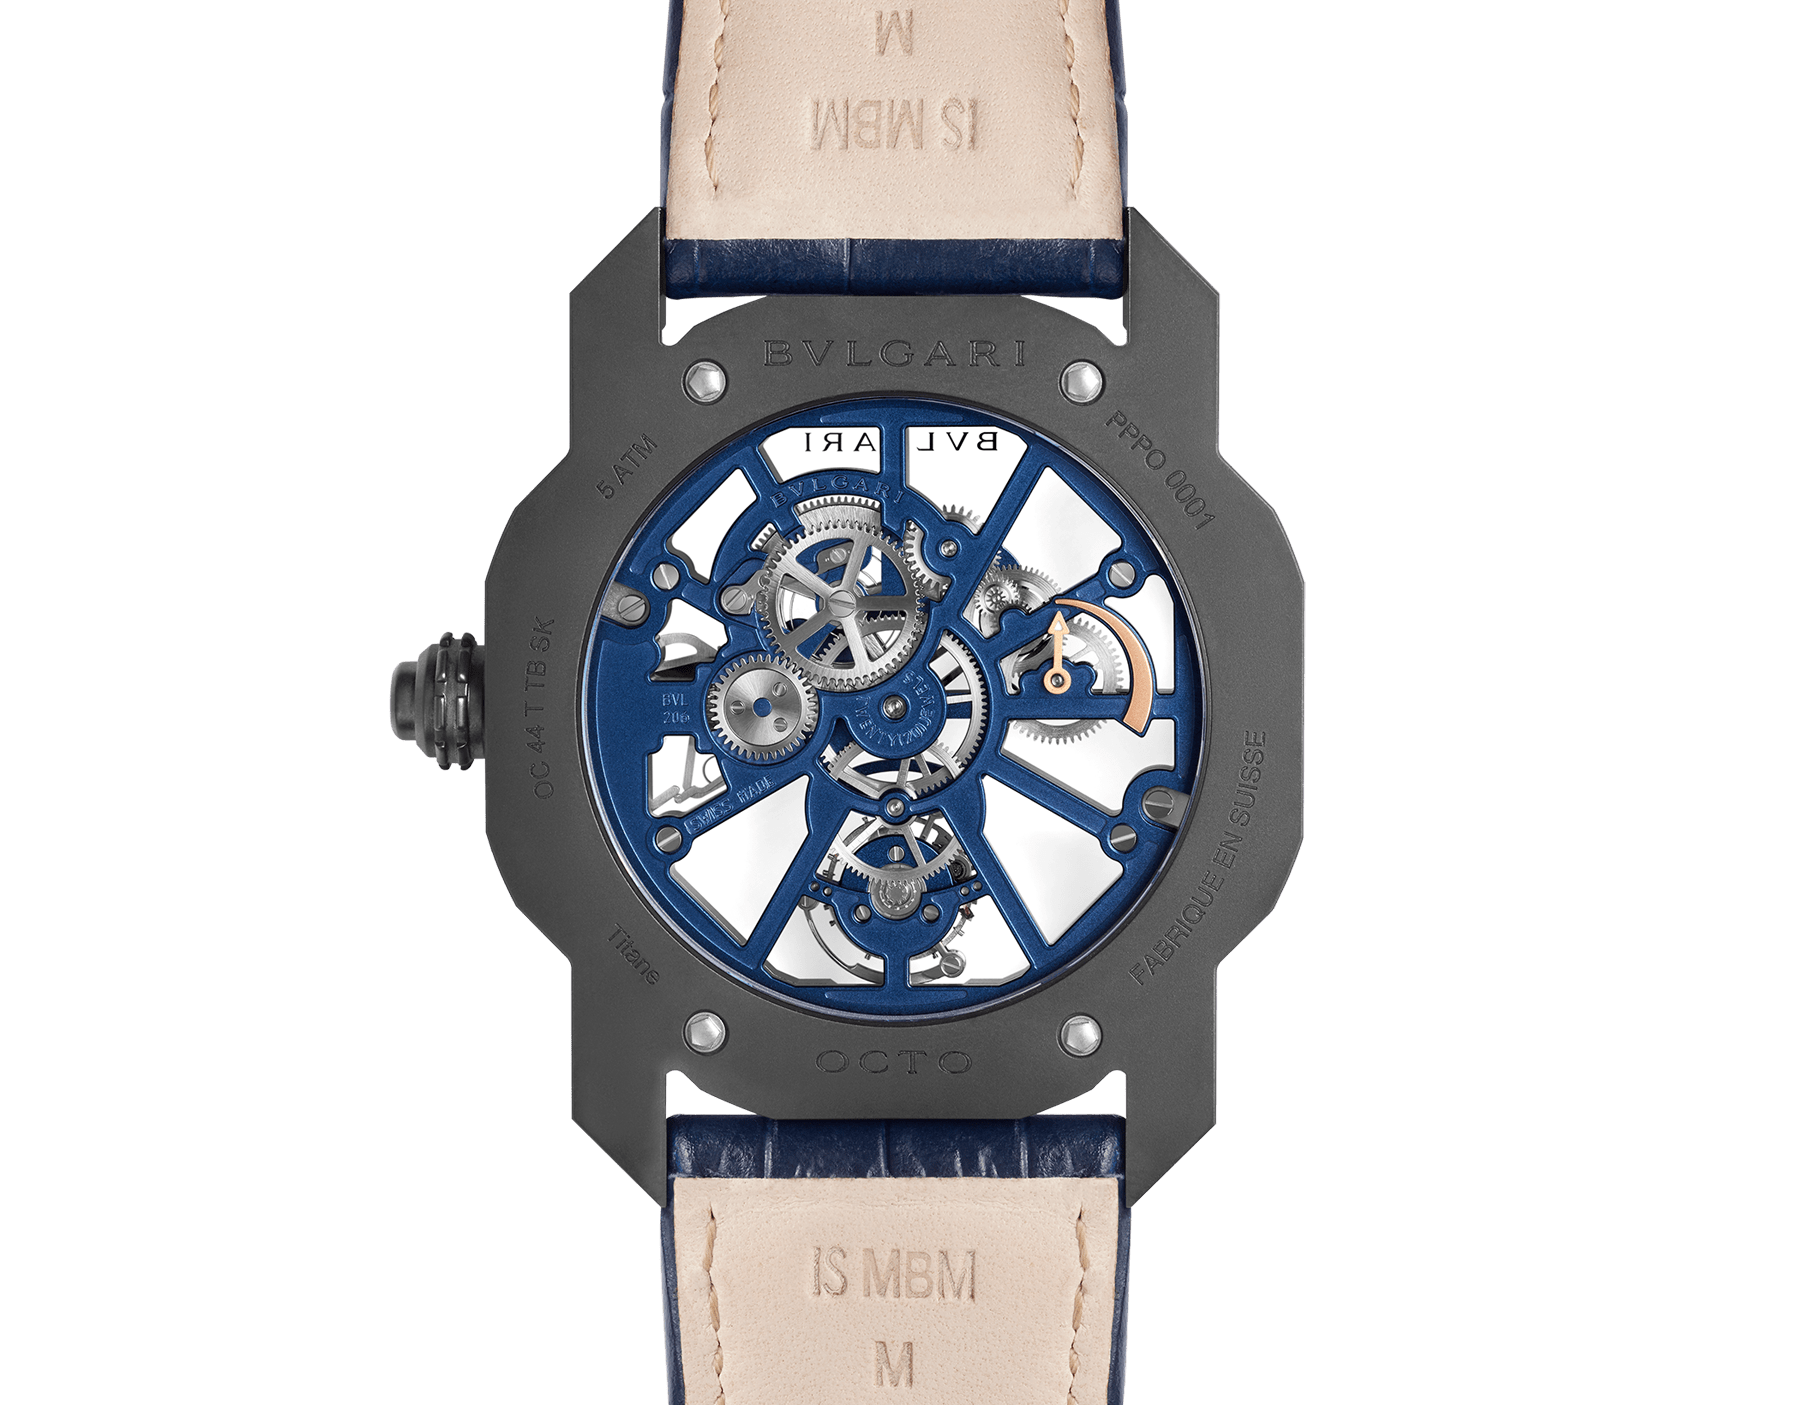 Octo Roma Tourbillon Sapphire watch with mechanical manufacture movement, flying tourbillon, manual winding, titanium case with black Diamond Like Carbon treatment, sapphire middle case, blue PVD calibre decorated with 18 kt rose gold indexes on the bridges and blue alligator bracelet 103154 image 4